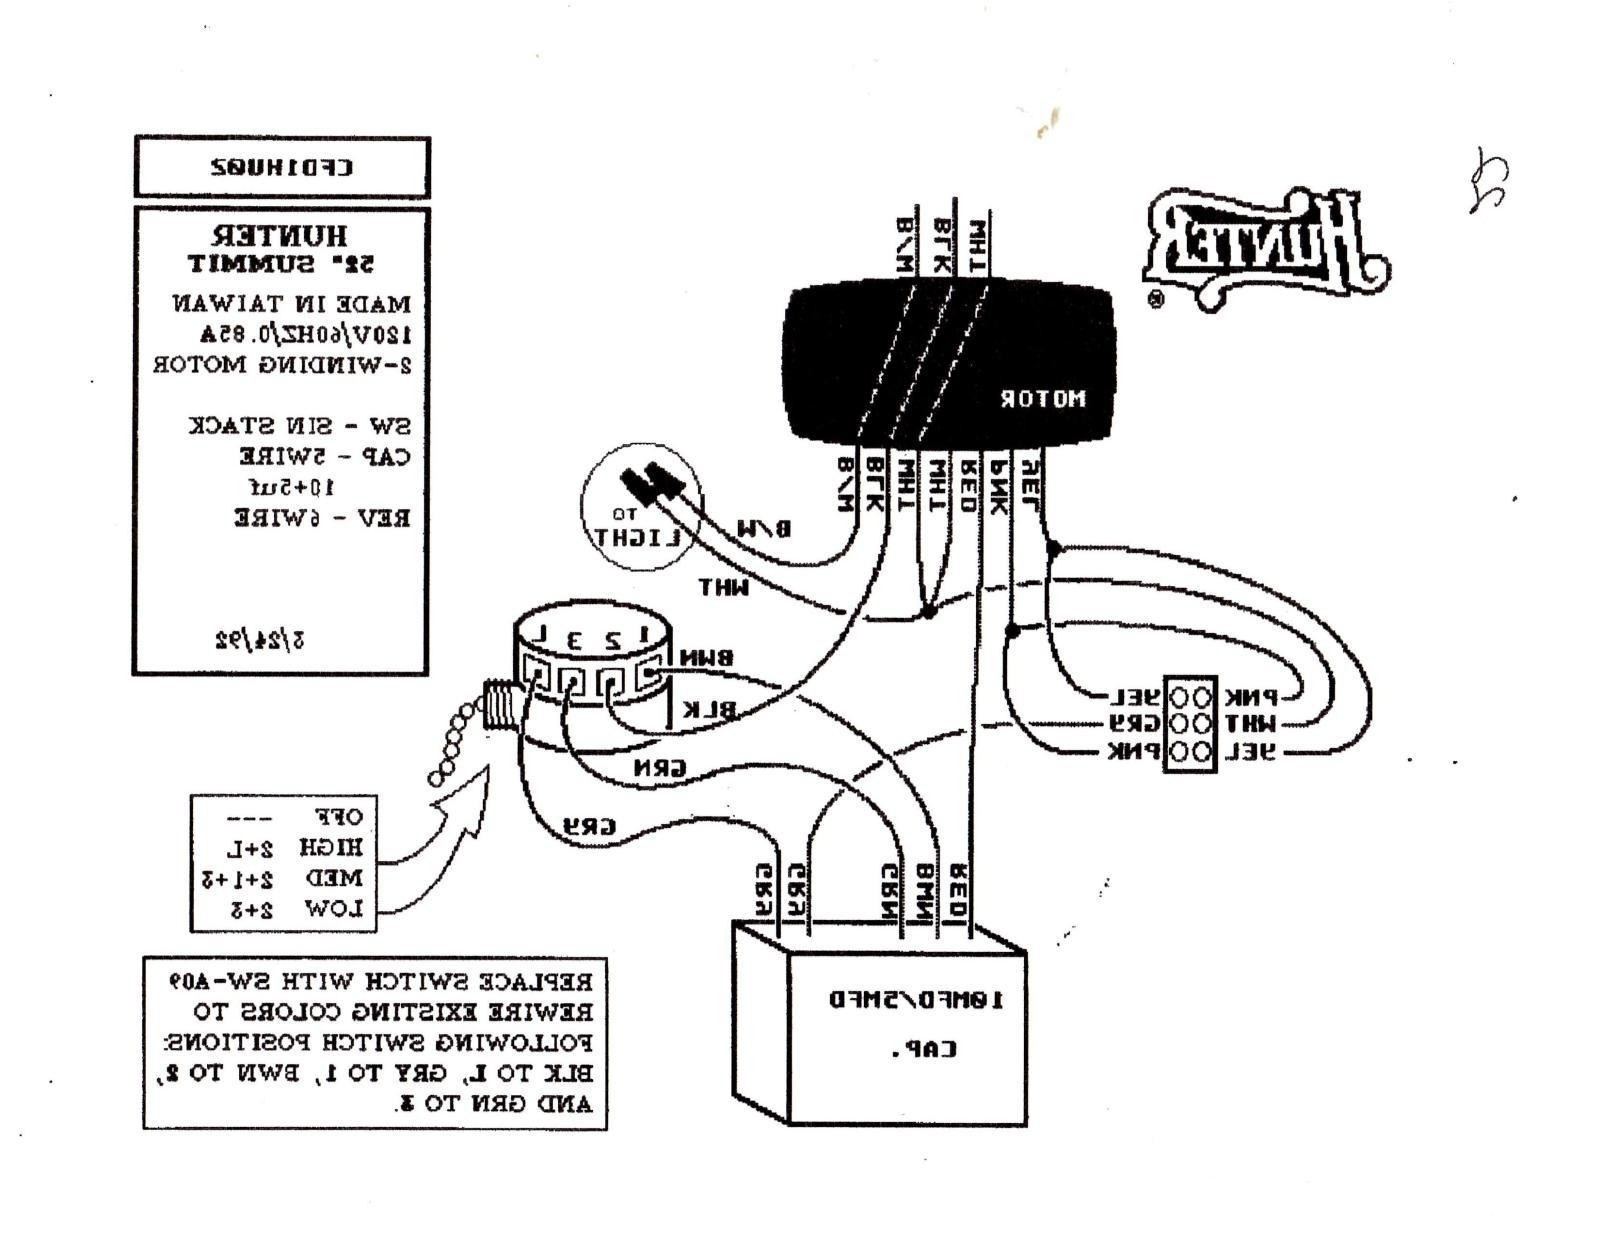 wiring diagram for a hampton bay ceiling fan with remote as well as